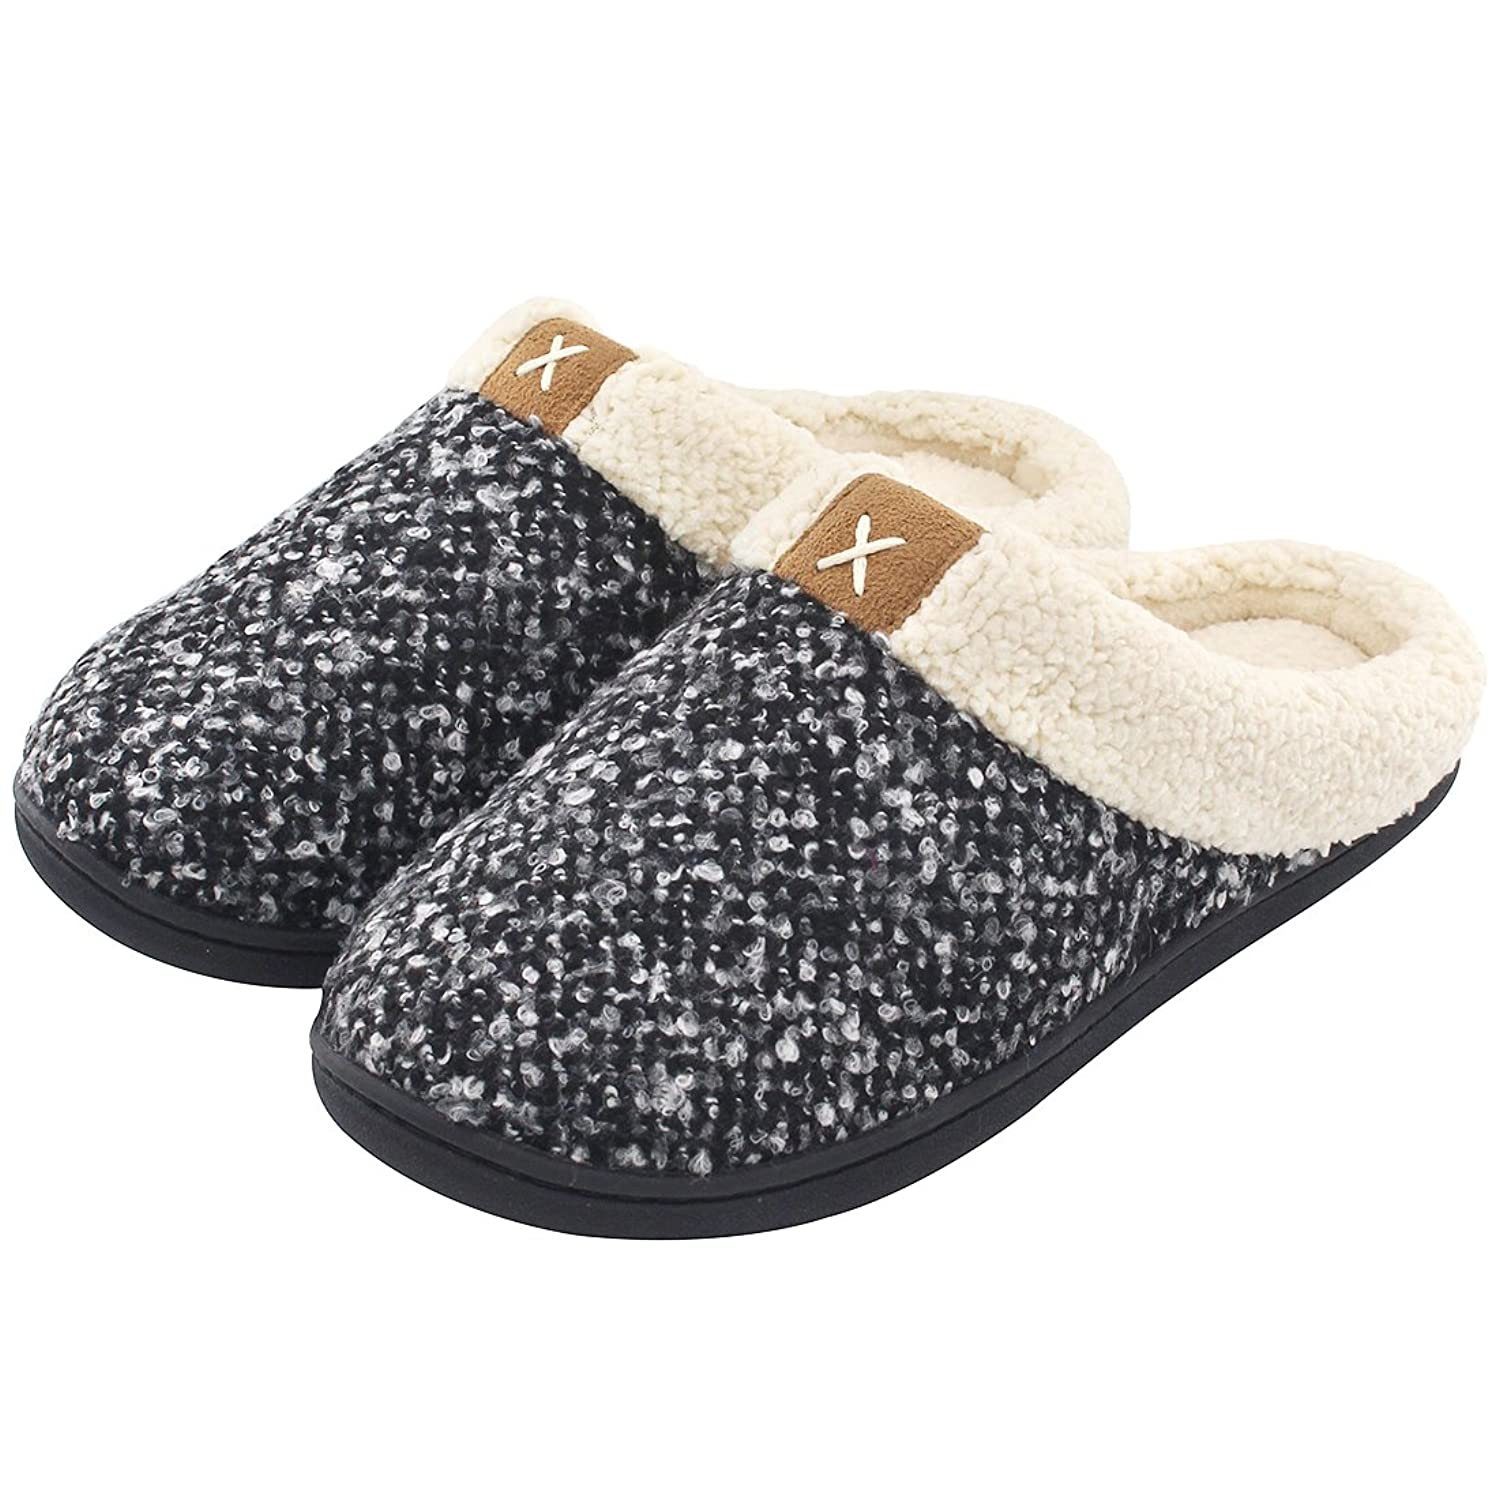 a92b2091f1c0 Women s Cozy Memory Foam Slippers Fuzzy Wool-Like Plush Fleece Lined House  Shoes w